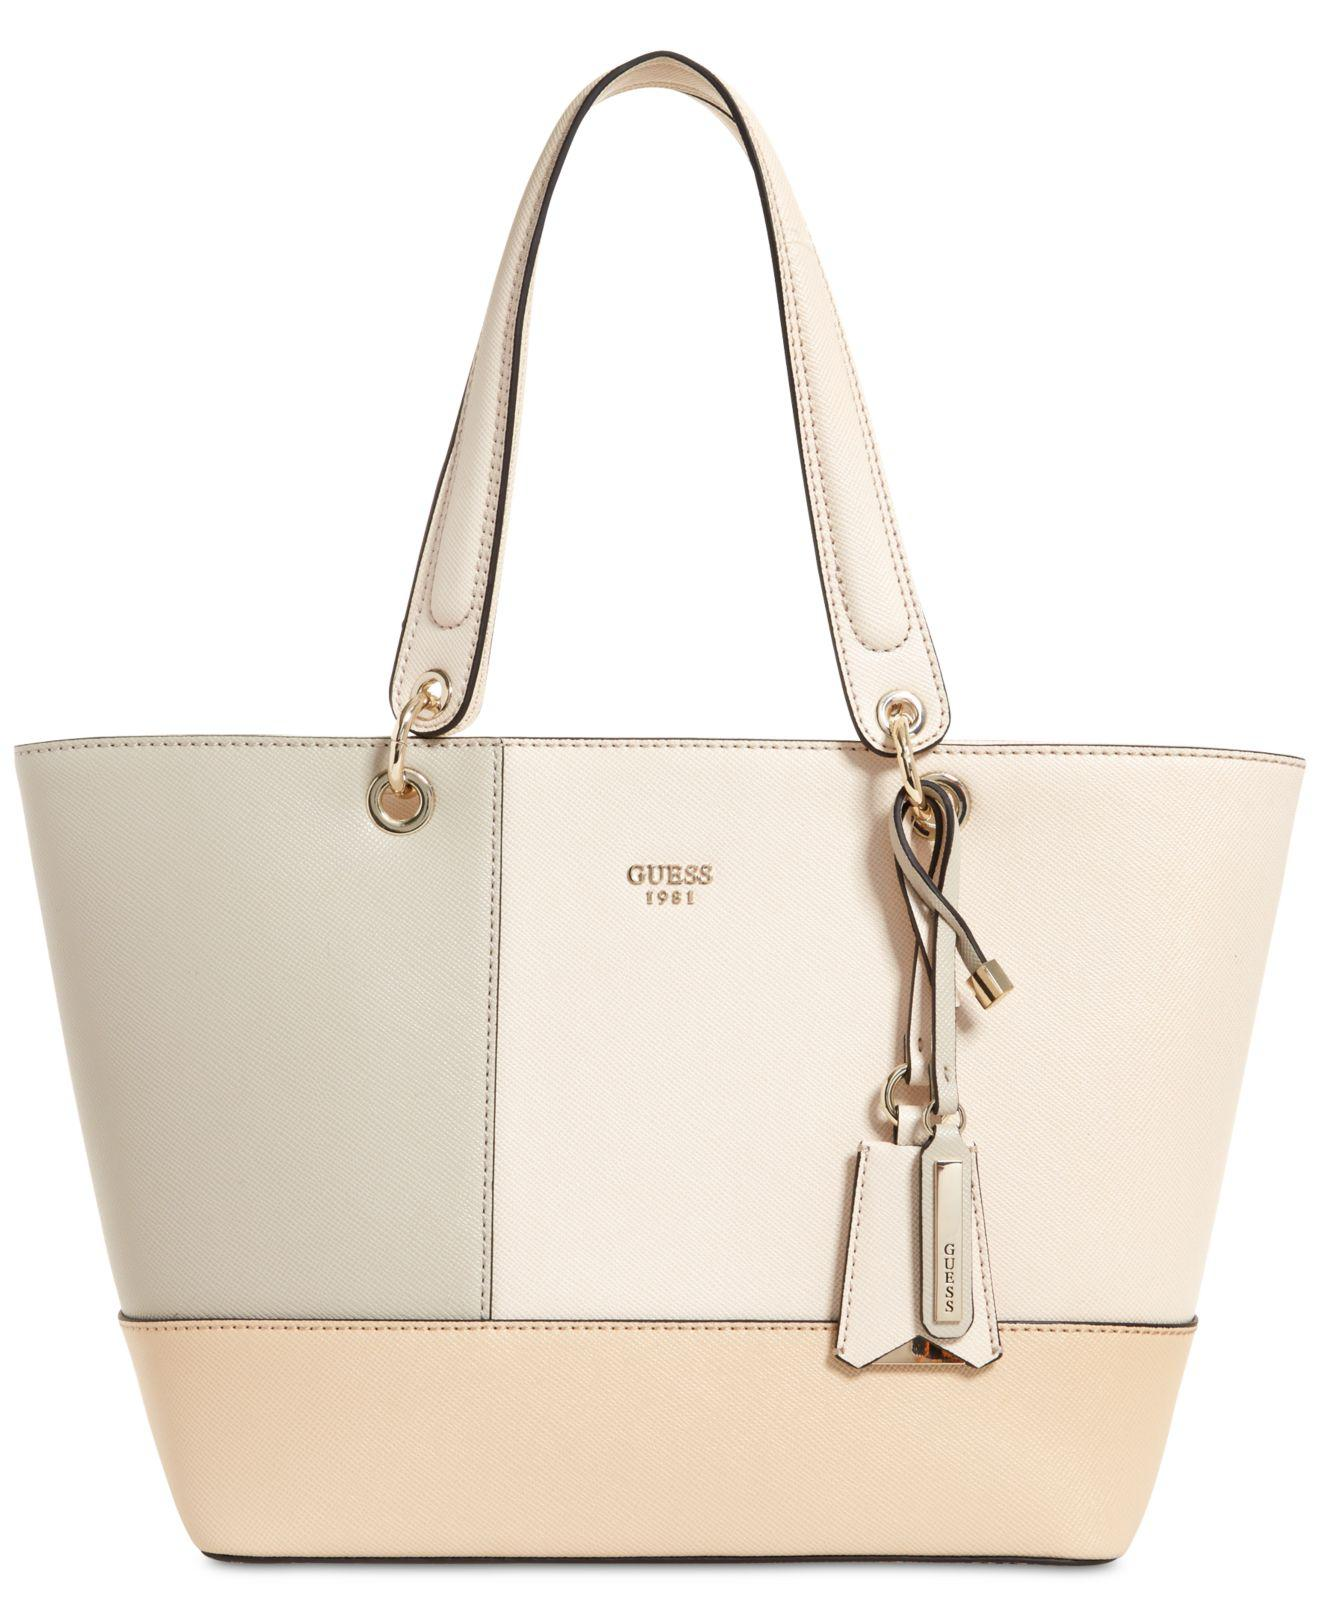 f684a8f2a5 Guess Kamryn Extra-large Tote in Natural - Lyst